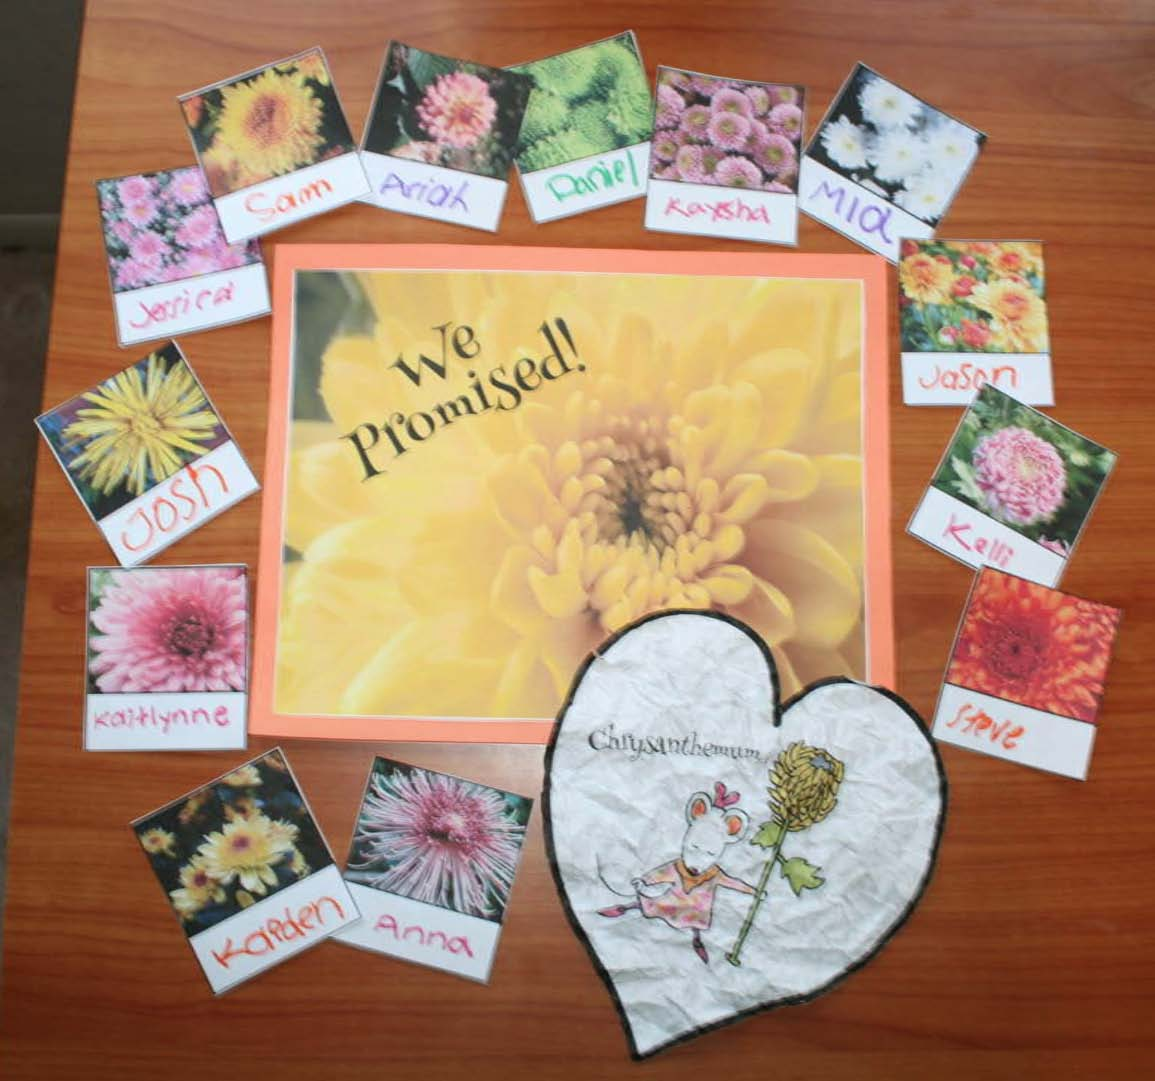 chrysanthemum activities, chrysanthemum crafts, paper flower crafts, back to school activities, bucket filling activities, chrysanthemum writing prompts, back to school bulletin boards, classroom management ideas